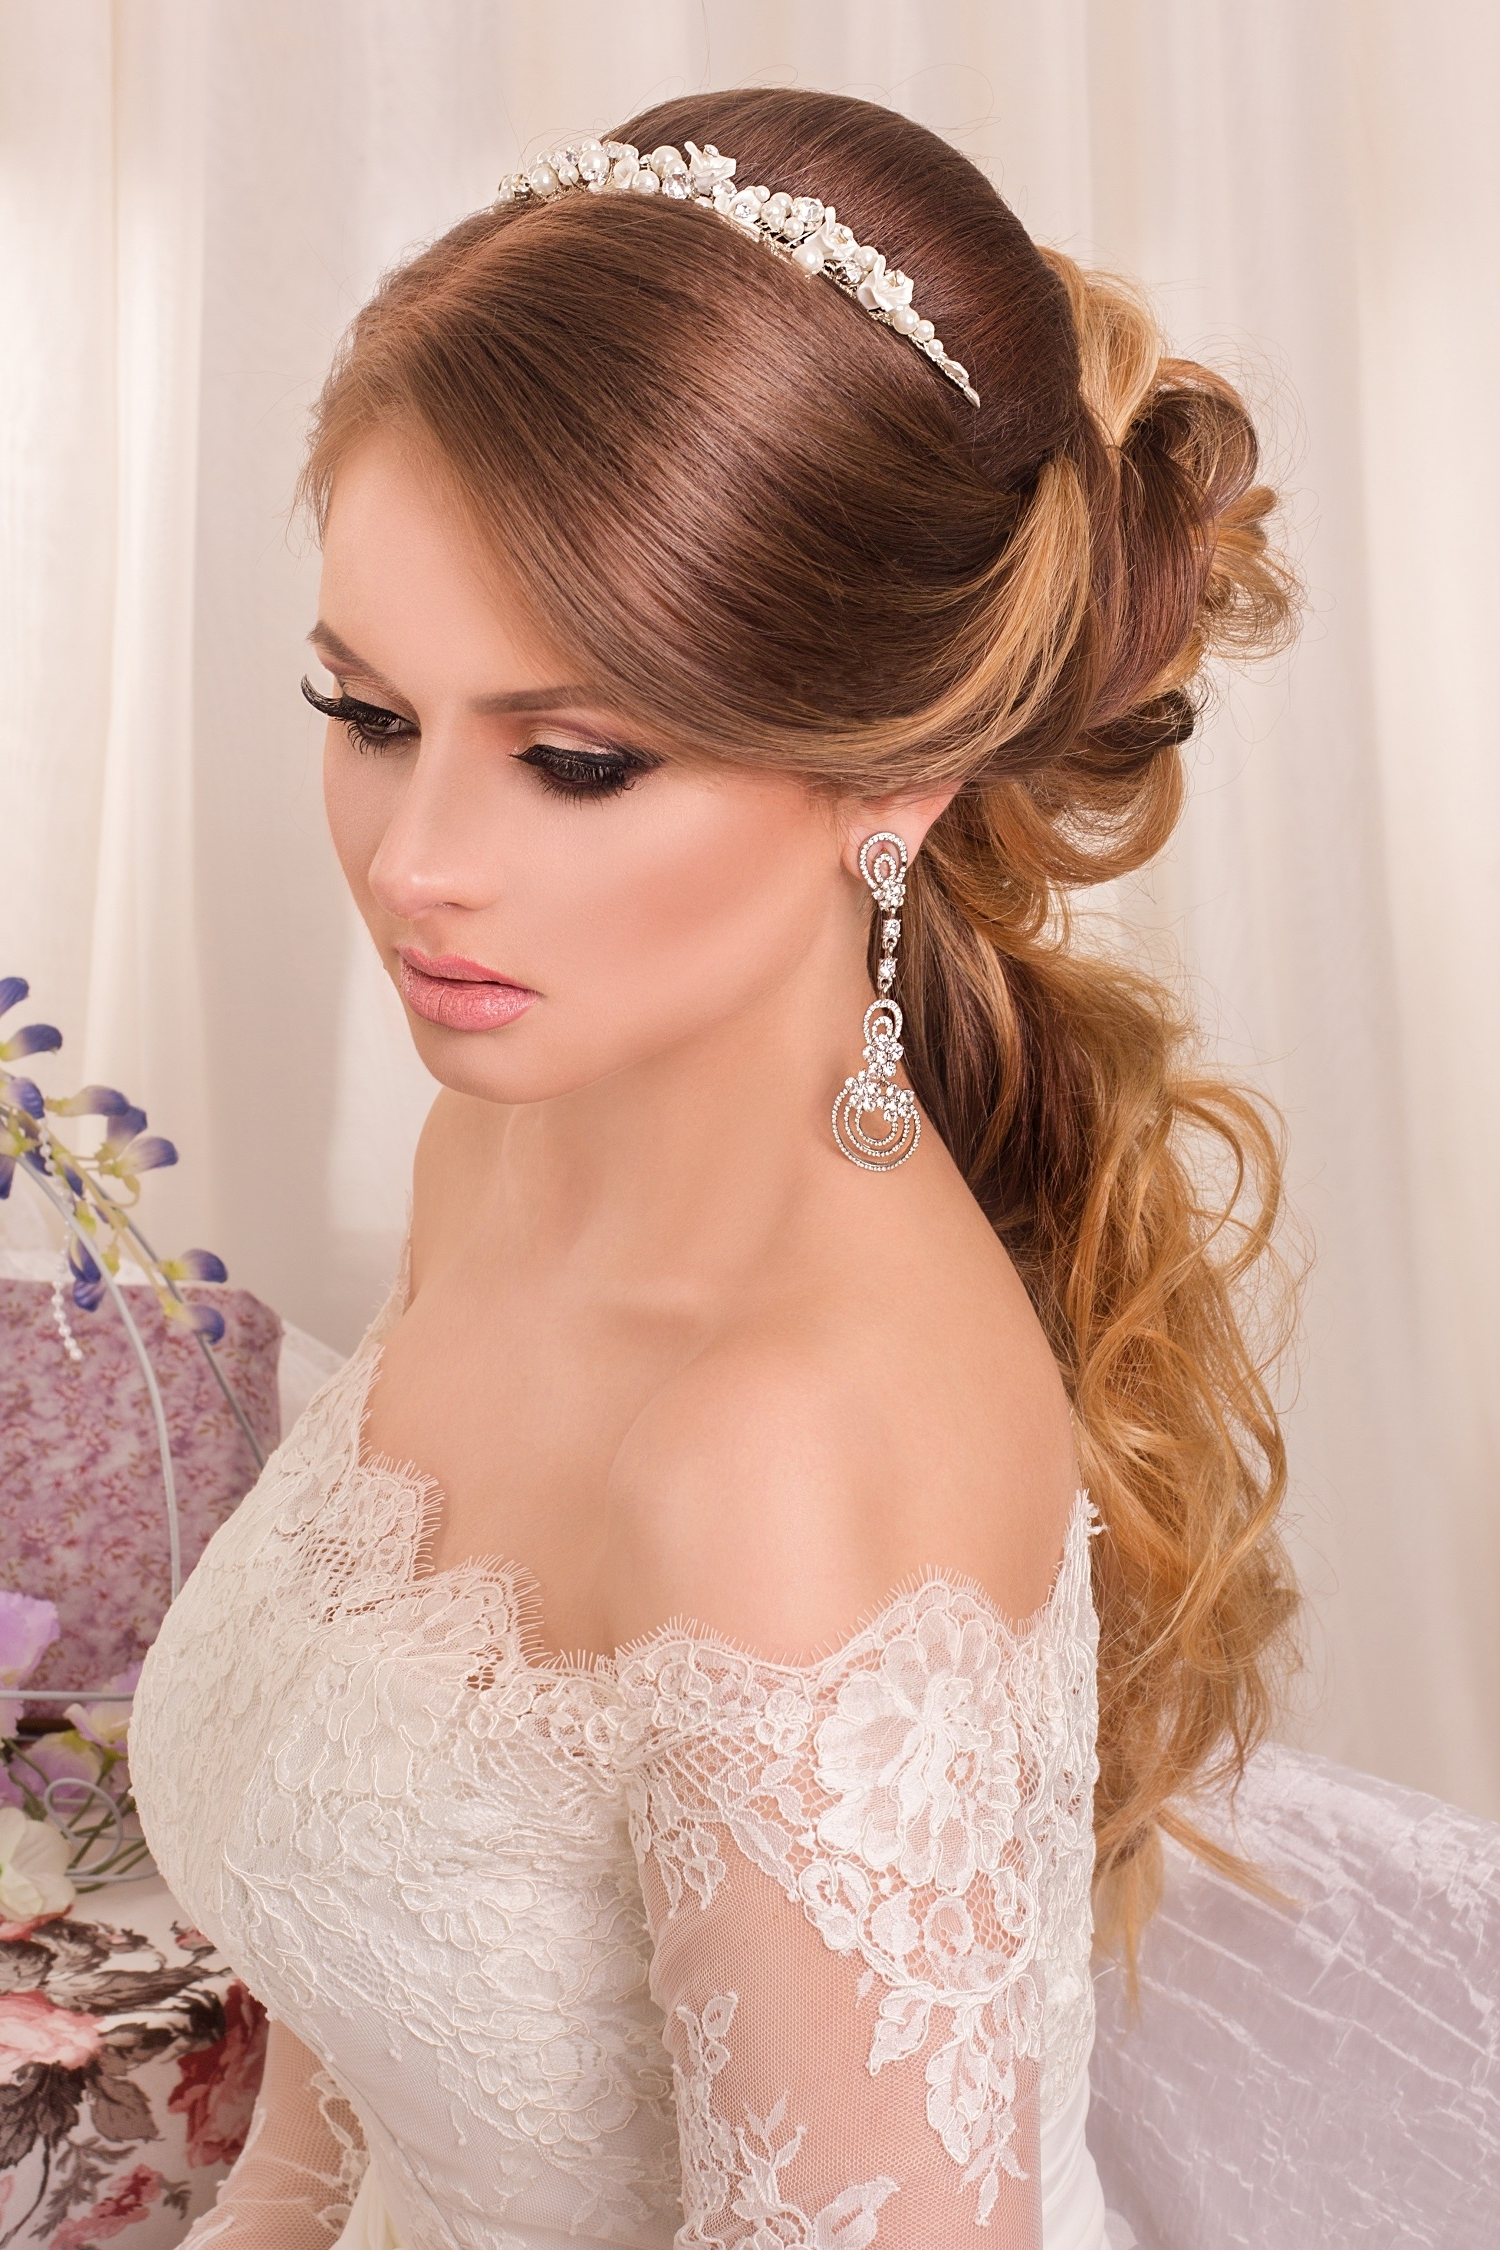 Awesome Bridal Hairstyles With Gowns For Impressive Beauties Throughout Well Known Wedding Hairstyles For Young Brides (Gallery 14 of 15)